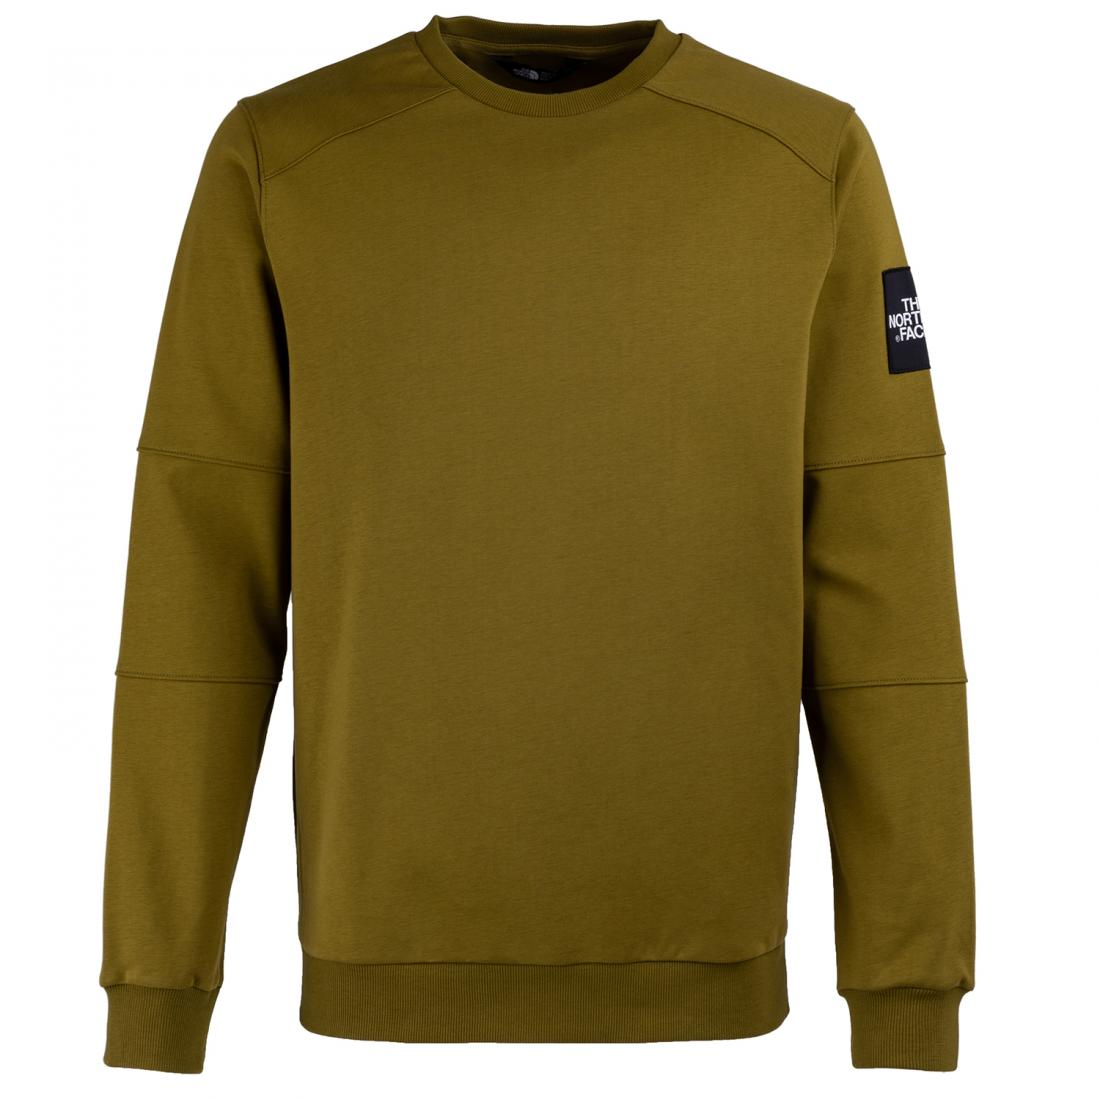 Свитшот The North Face Fine Crew купить в Boardshop №1